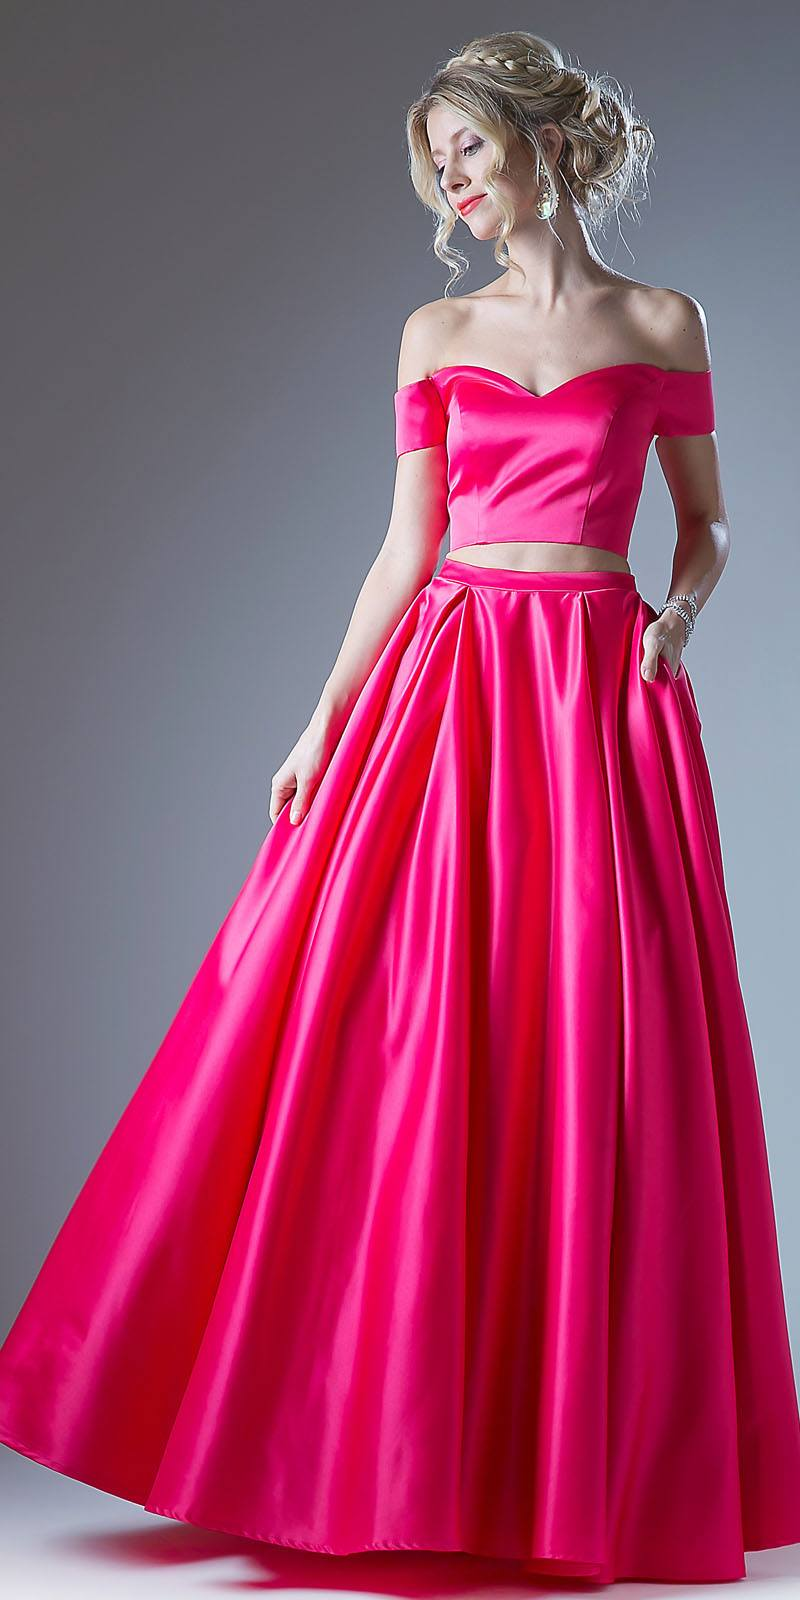 4836fcd993a4 ... Fuchsia Off Shoulder Two-Piece Long Prom Dress with Pockets ...